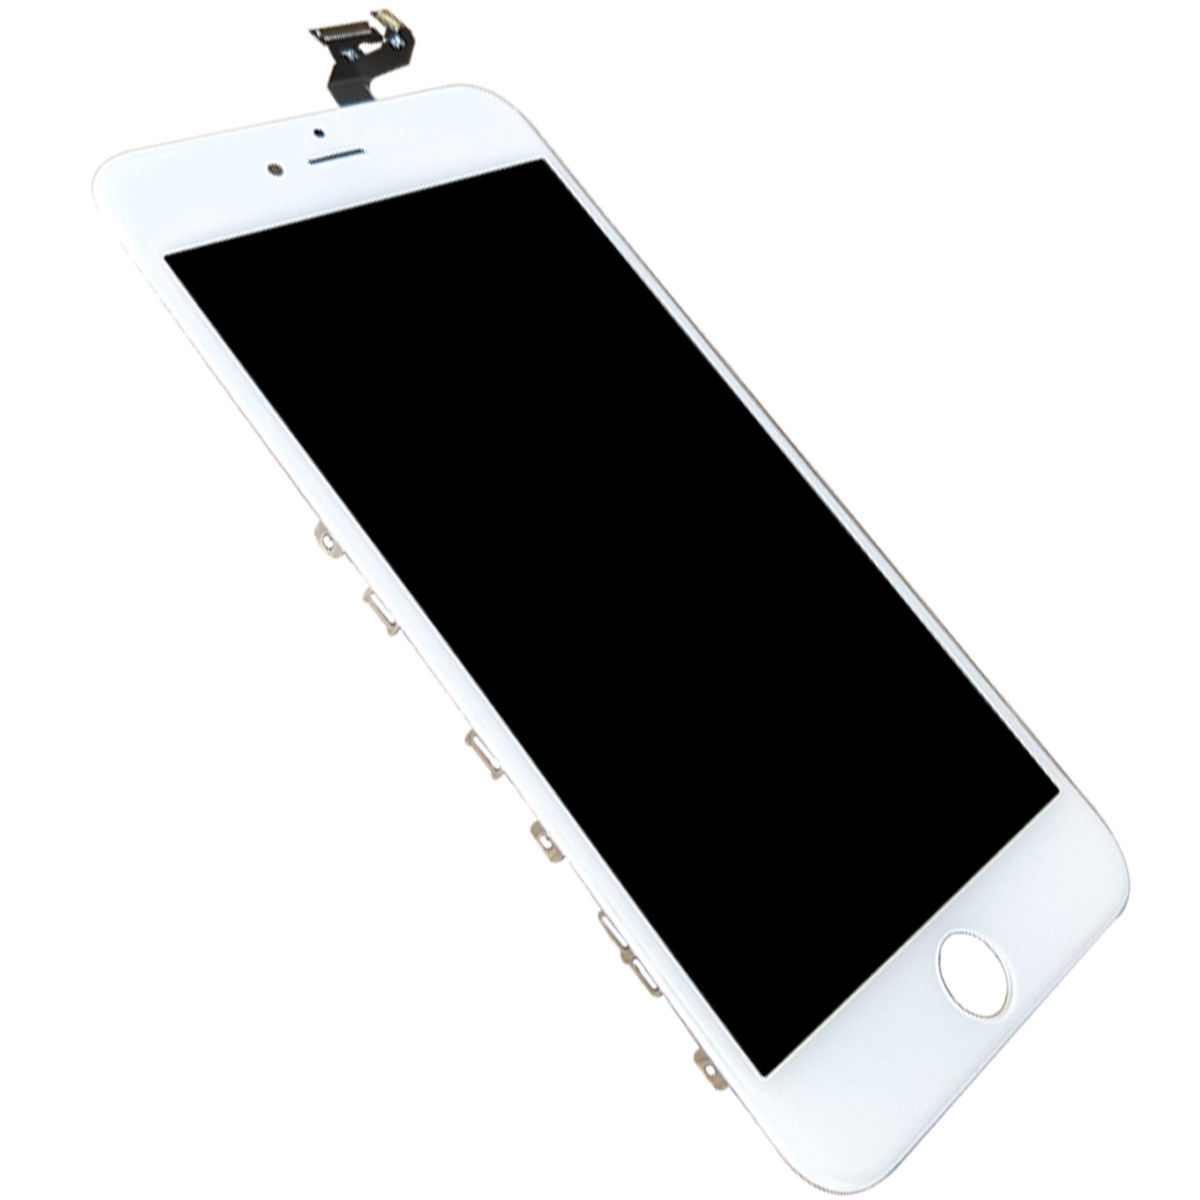 Compare retail prices of Apple iPhone 6s plus LCD Touch Screen Display White white Unknown Network Brand New to get the best deal online